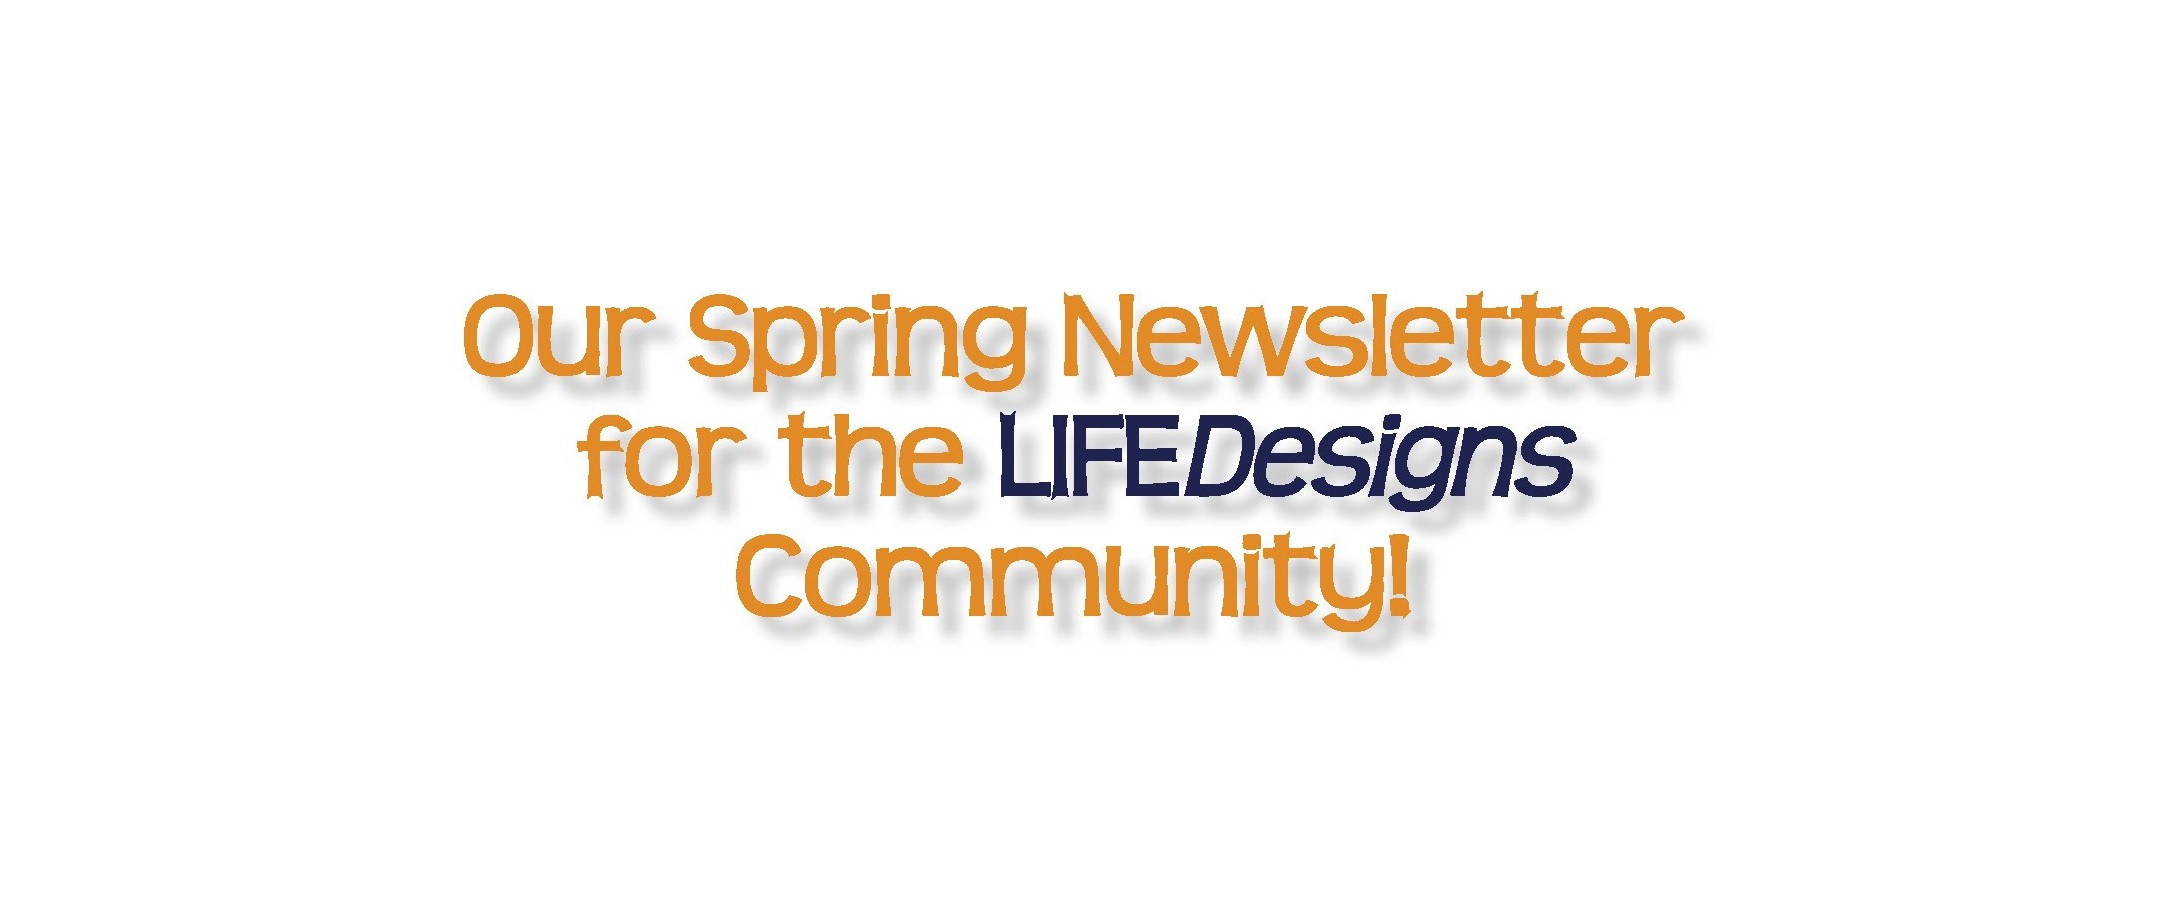 LIFEDesigns' Spring Newsletter